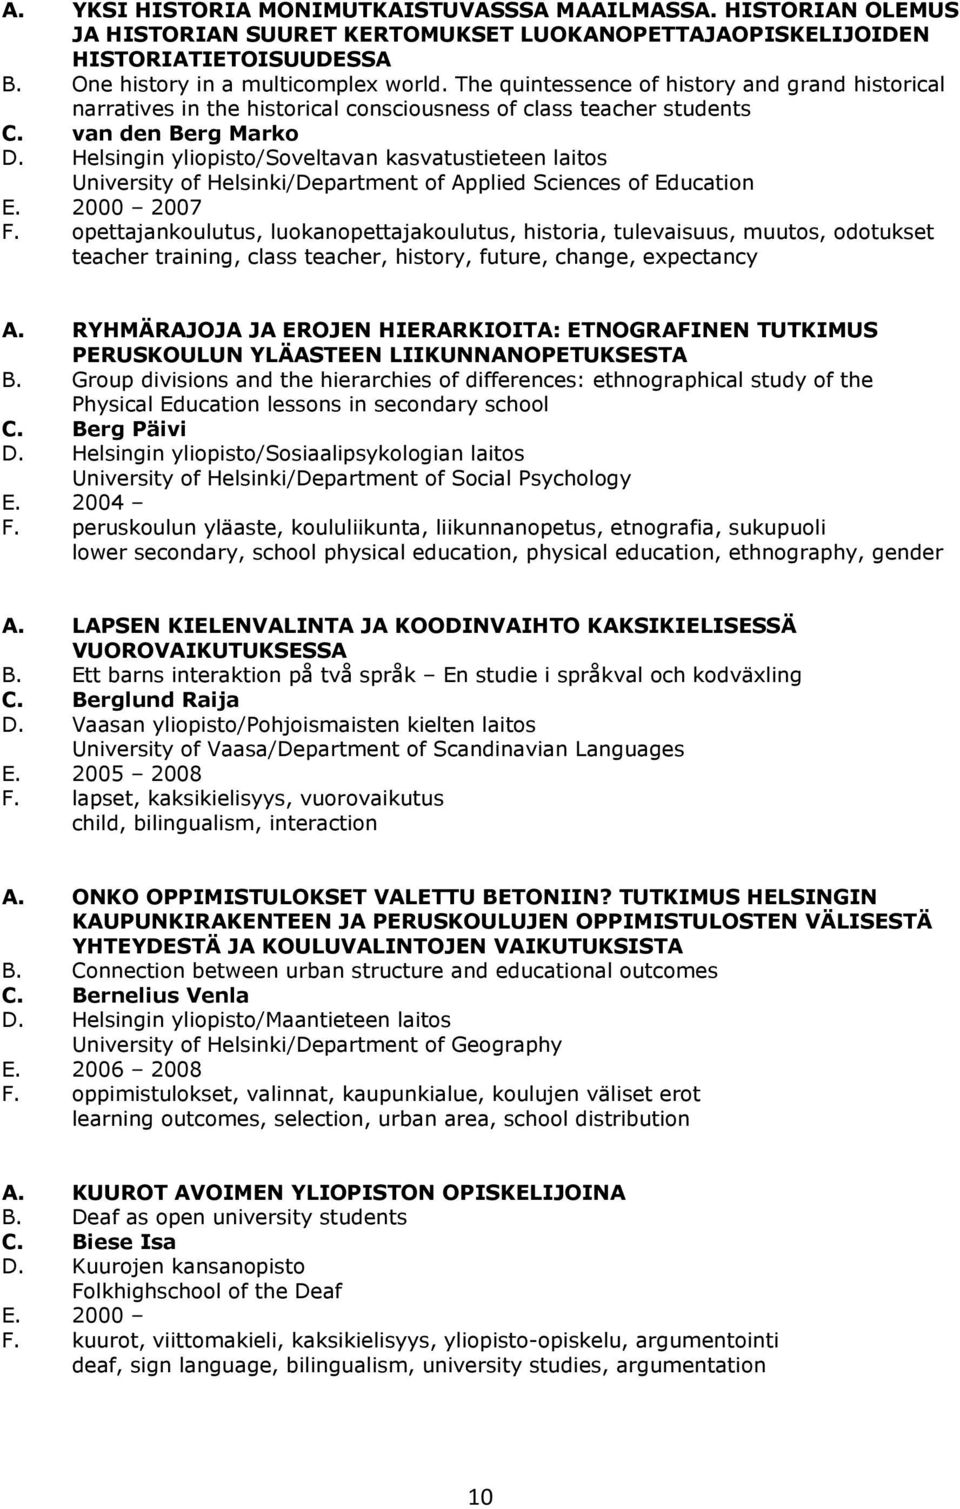 Helsingin yliopisto/soveltavan kasvatustieteen laitos University of Helsinki/Department of Applied Sciences of Education E. 2000 2007 F.